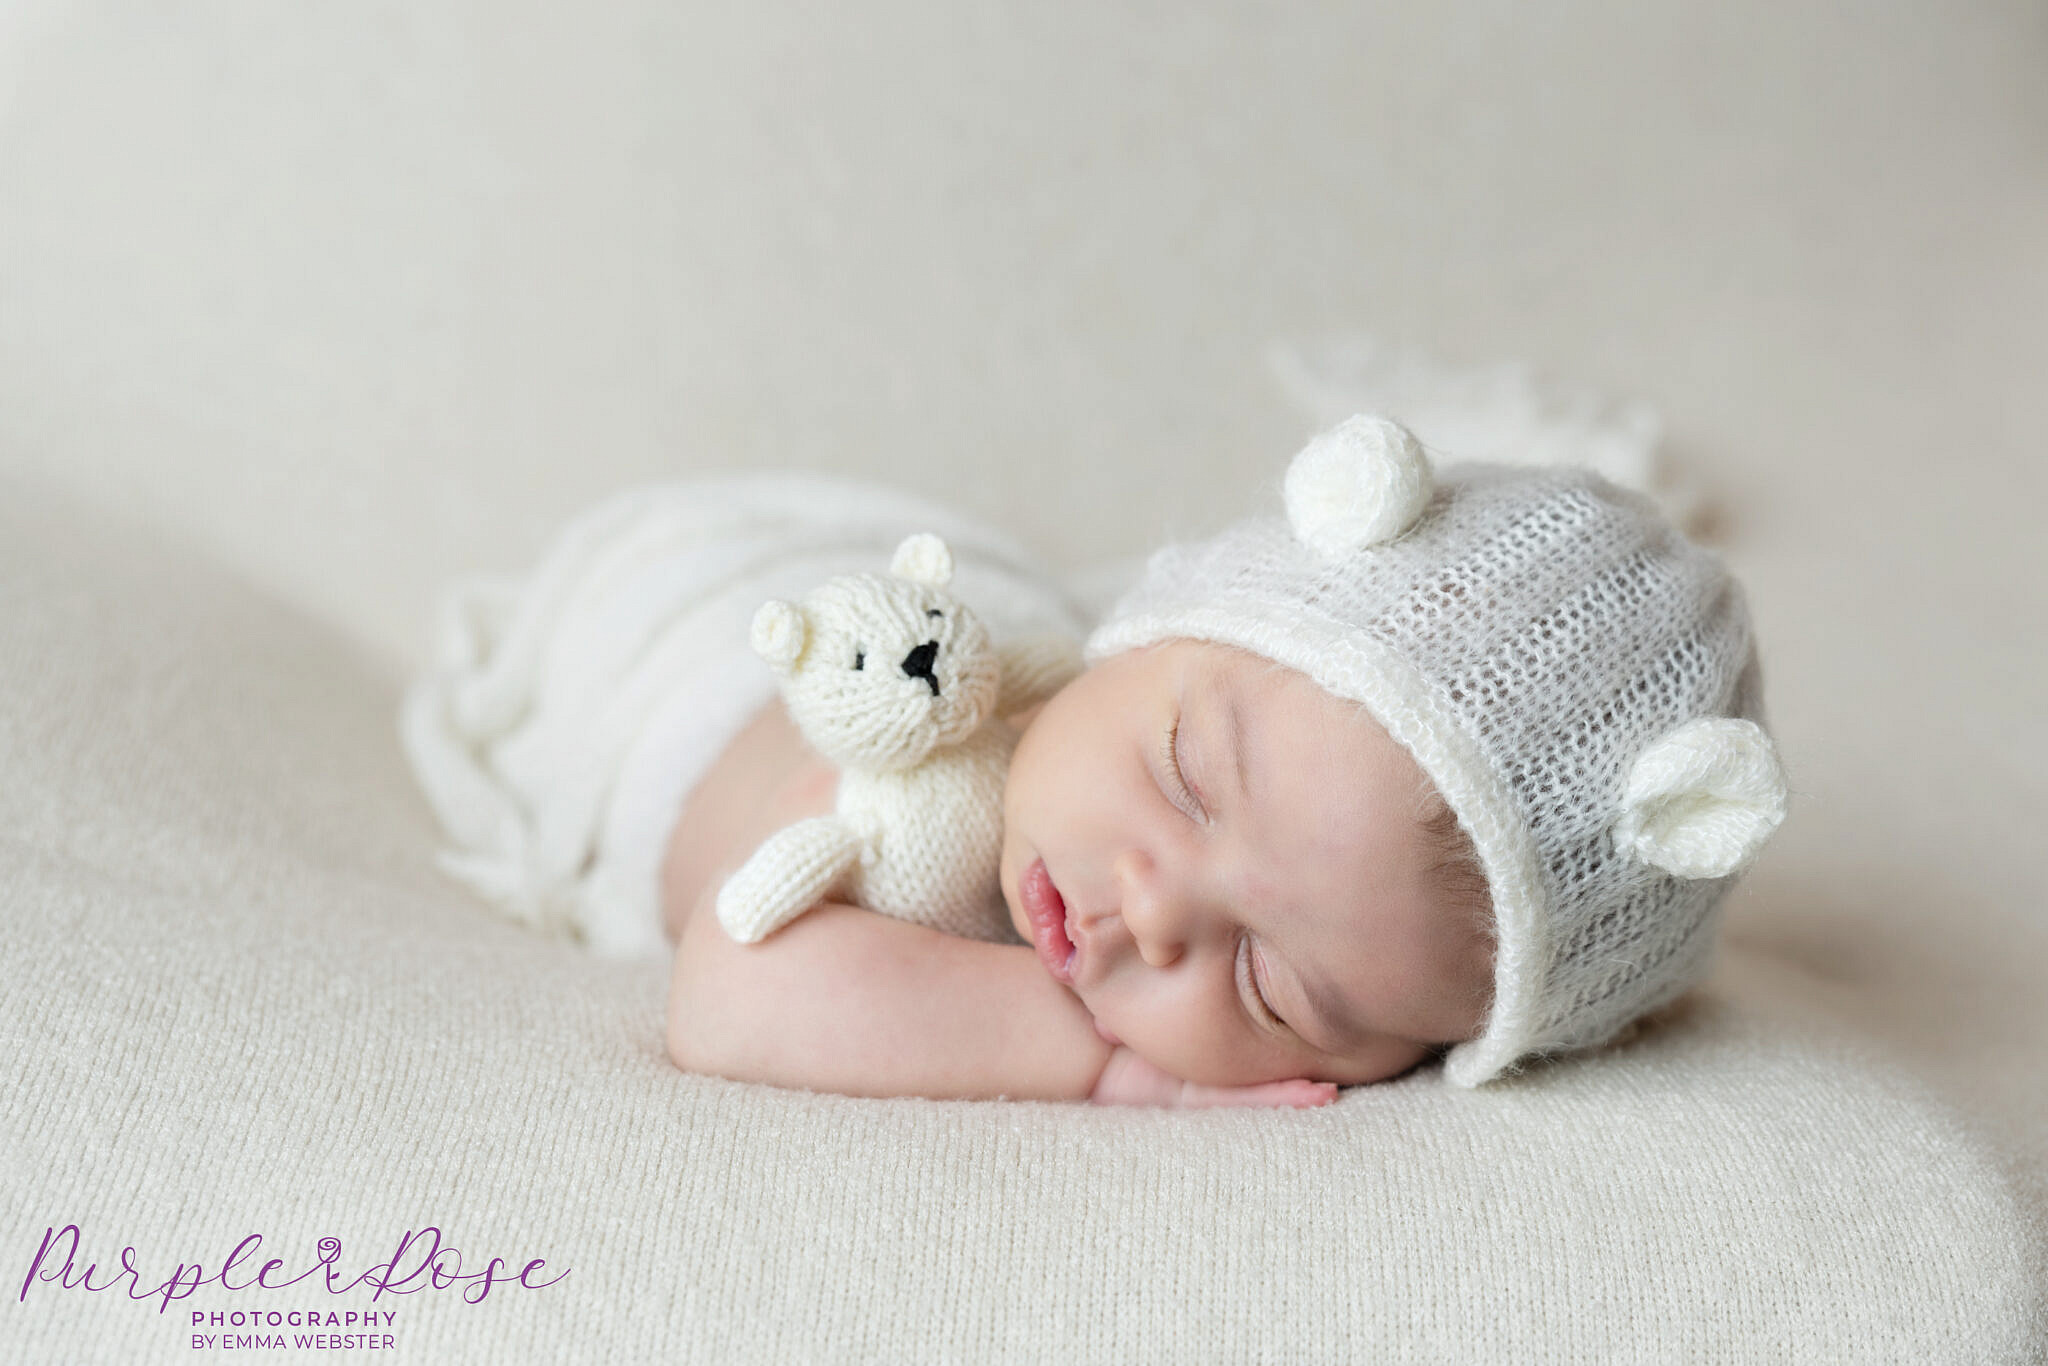 Baby girl cuddling teddy with bear bonnet on